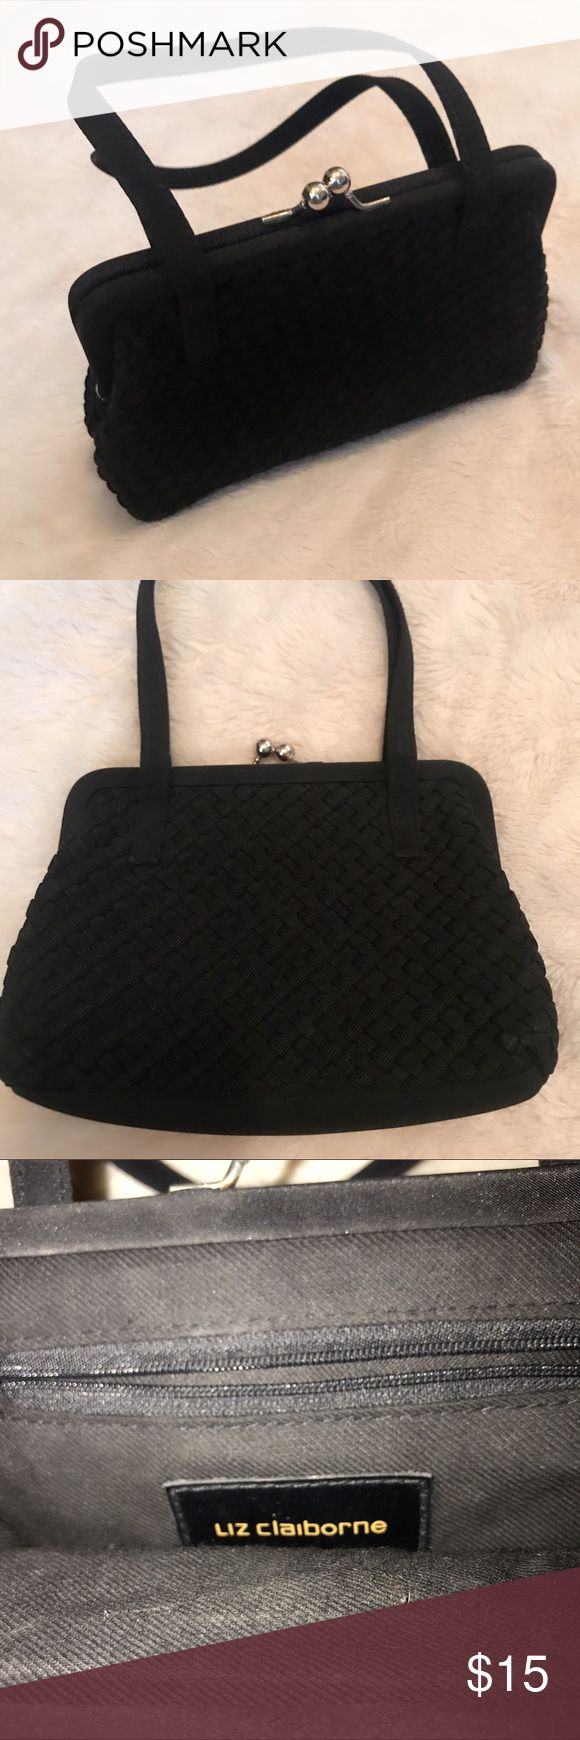 Liz Claiborne Evening Bag Looking for the perfect evening bag?  This purse was used once. Yep, once to take to a wedding. Perfect condition.  Black with a woven detail. Toggle closure and one inside zip pocket. EUC!!! Check out my closet- bundle and save!! Liz Claiborne Bags Mini Bags